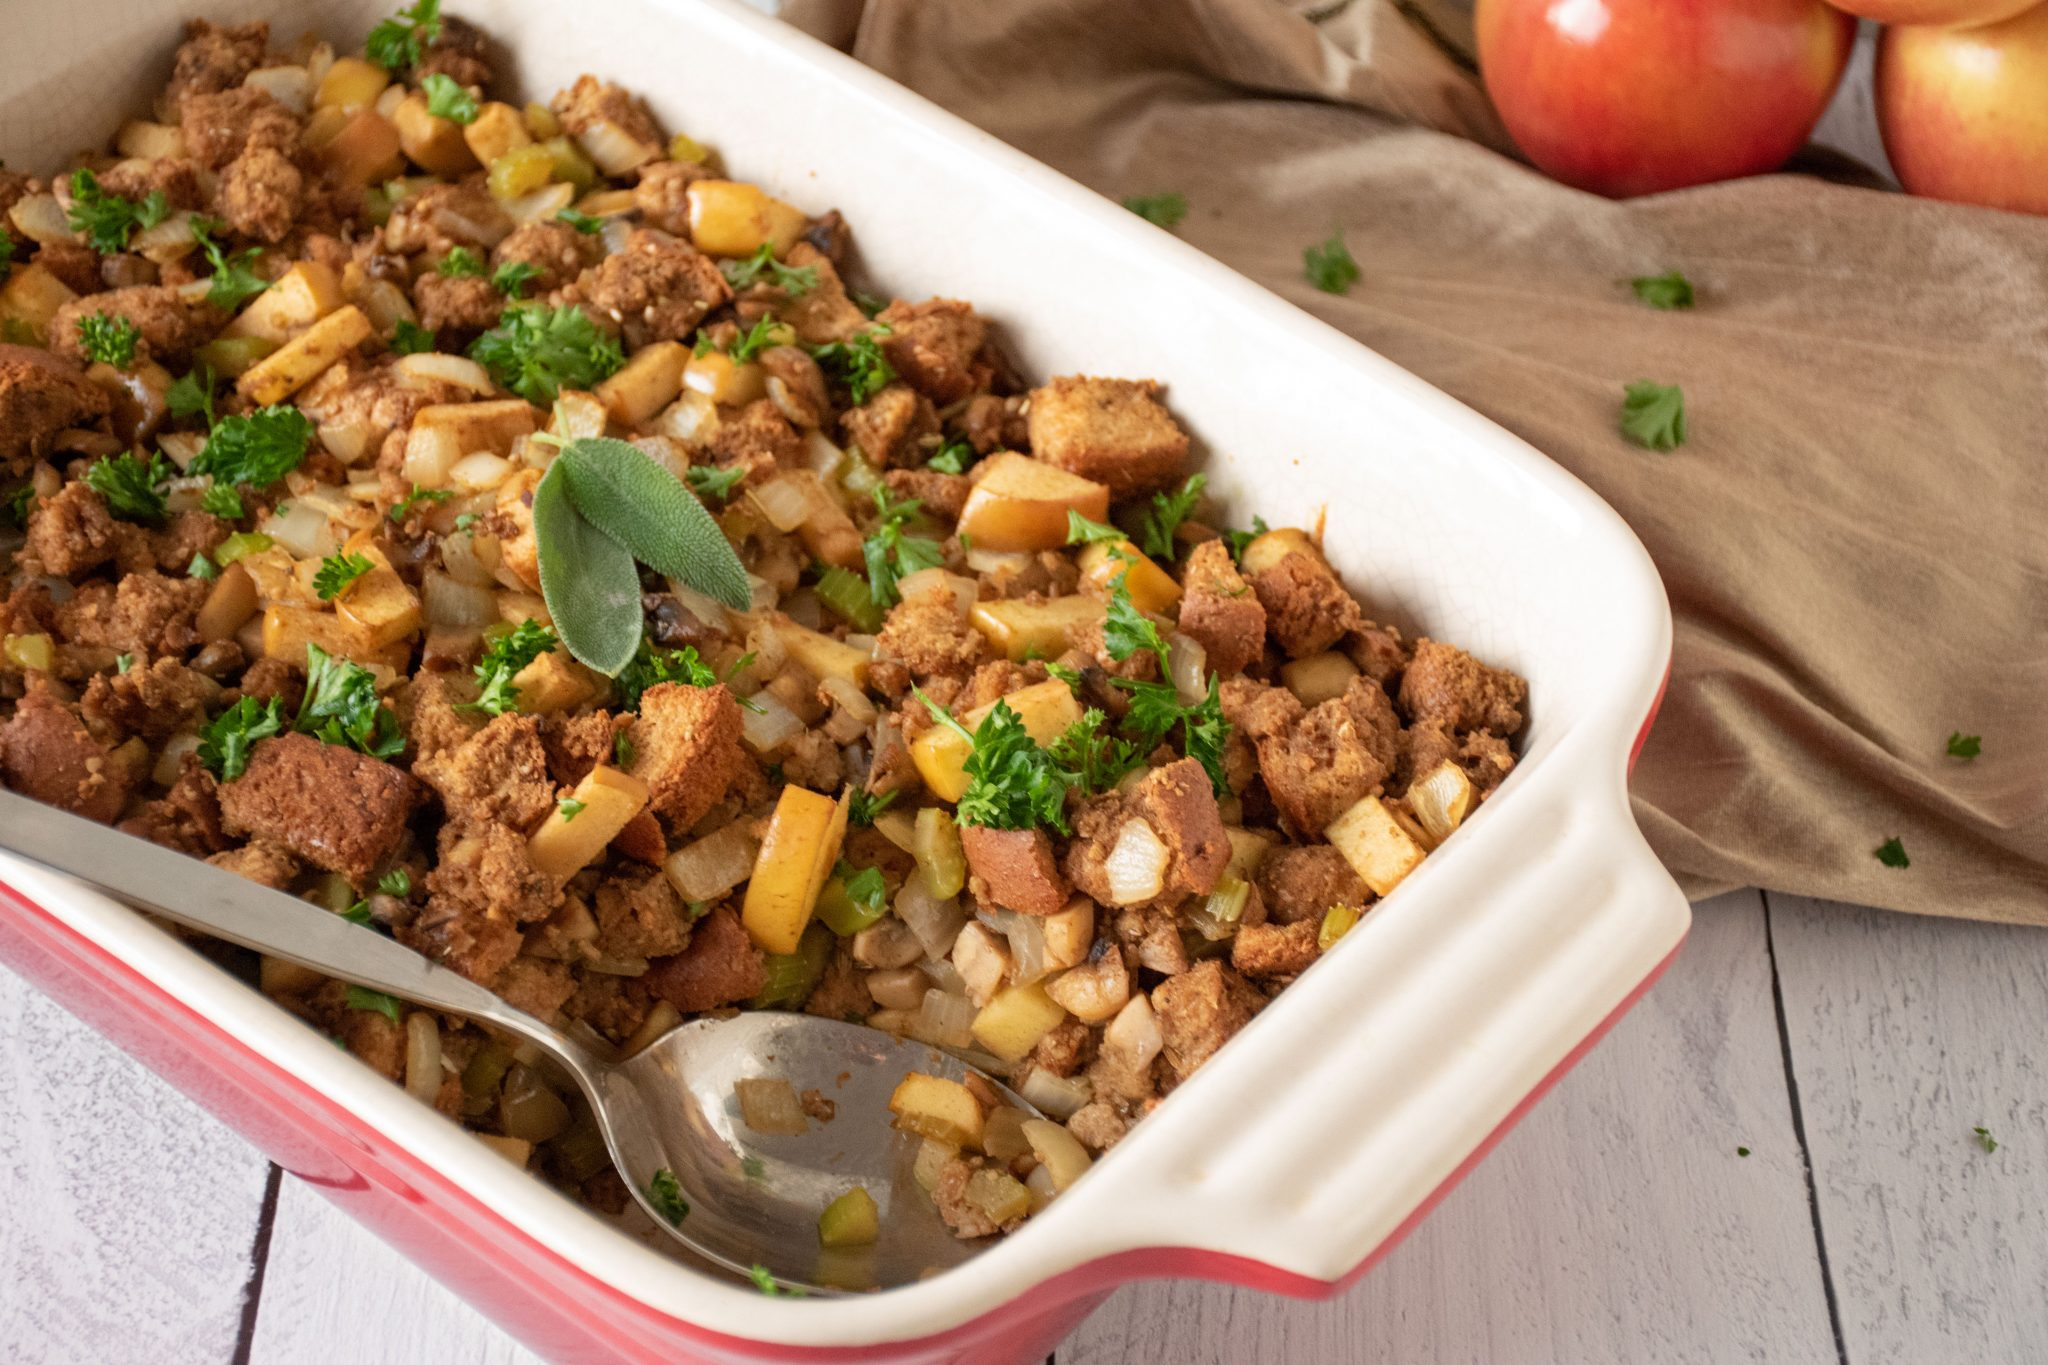 Apple Sage Stuffing in Casserole dish